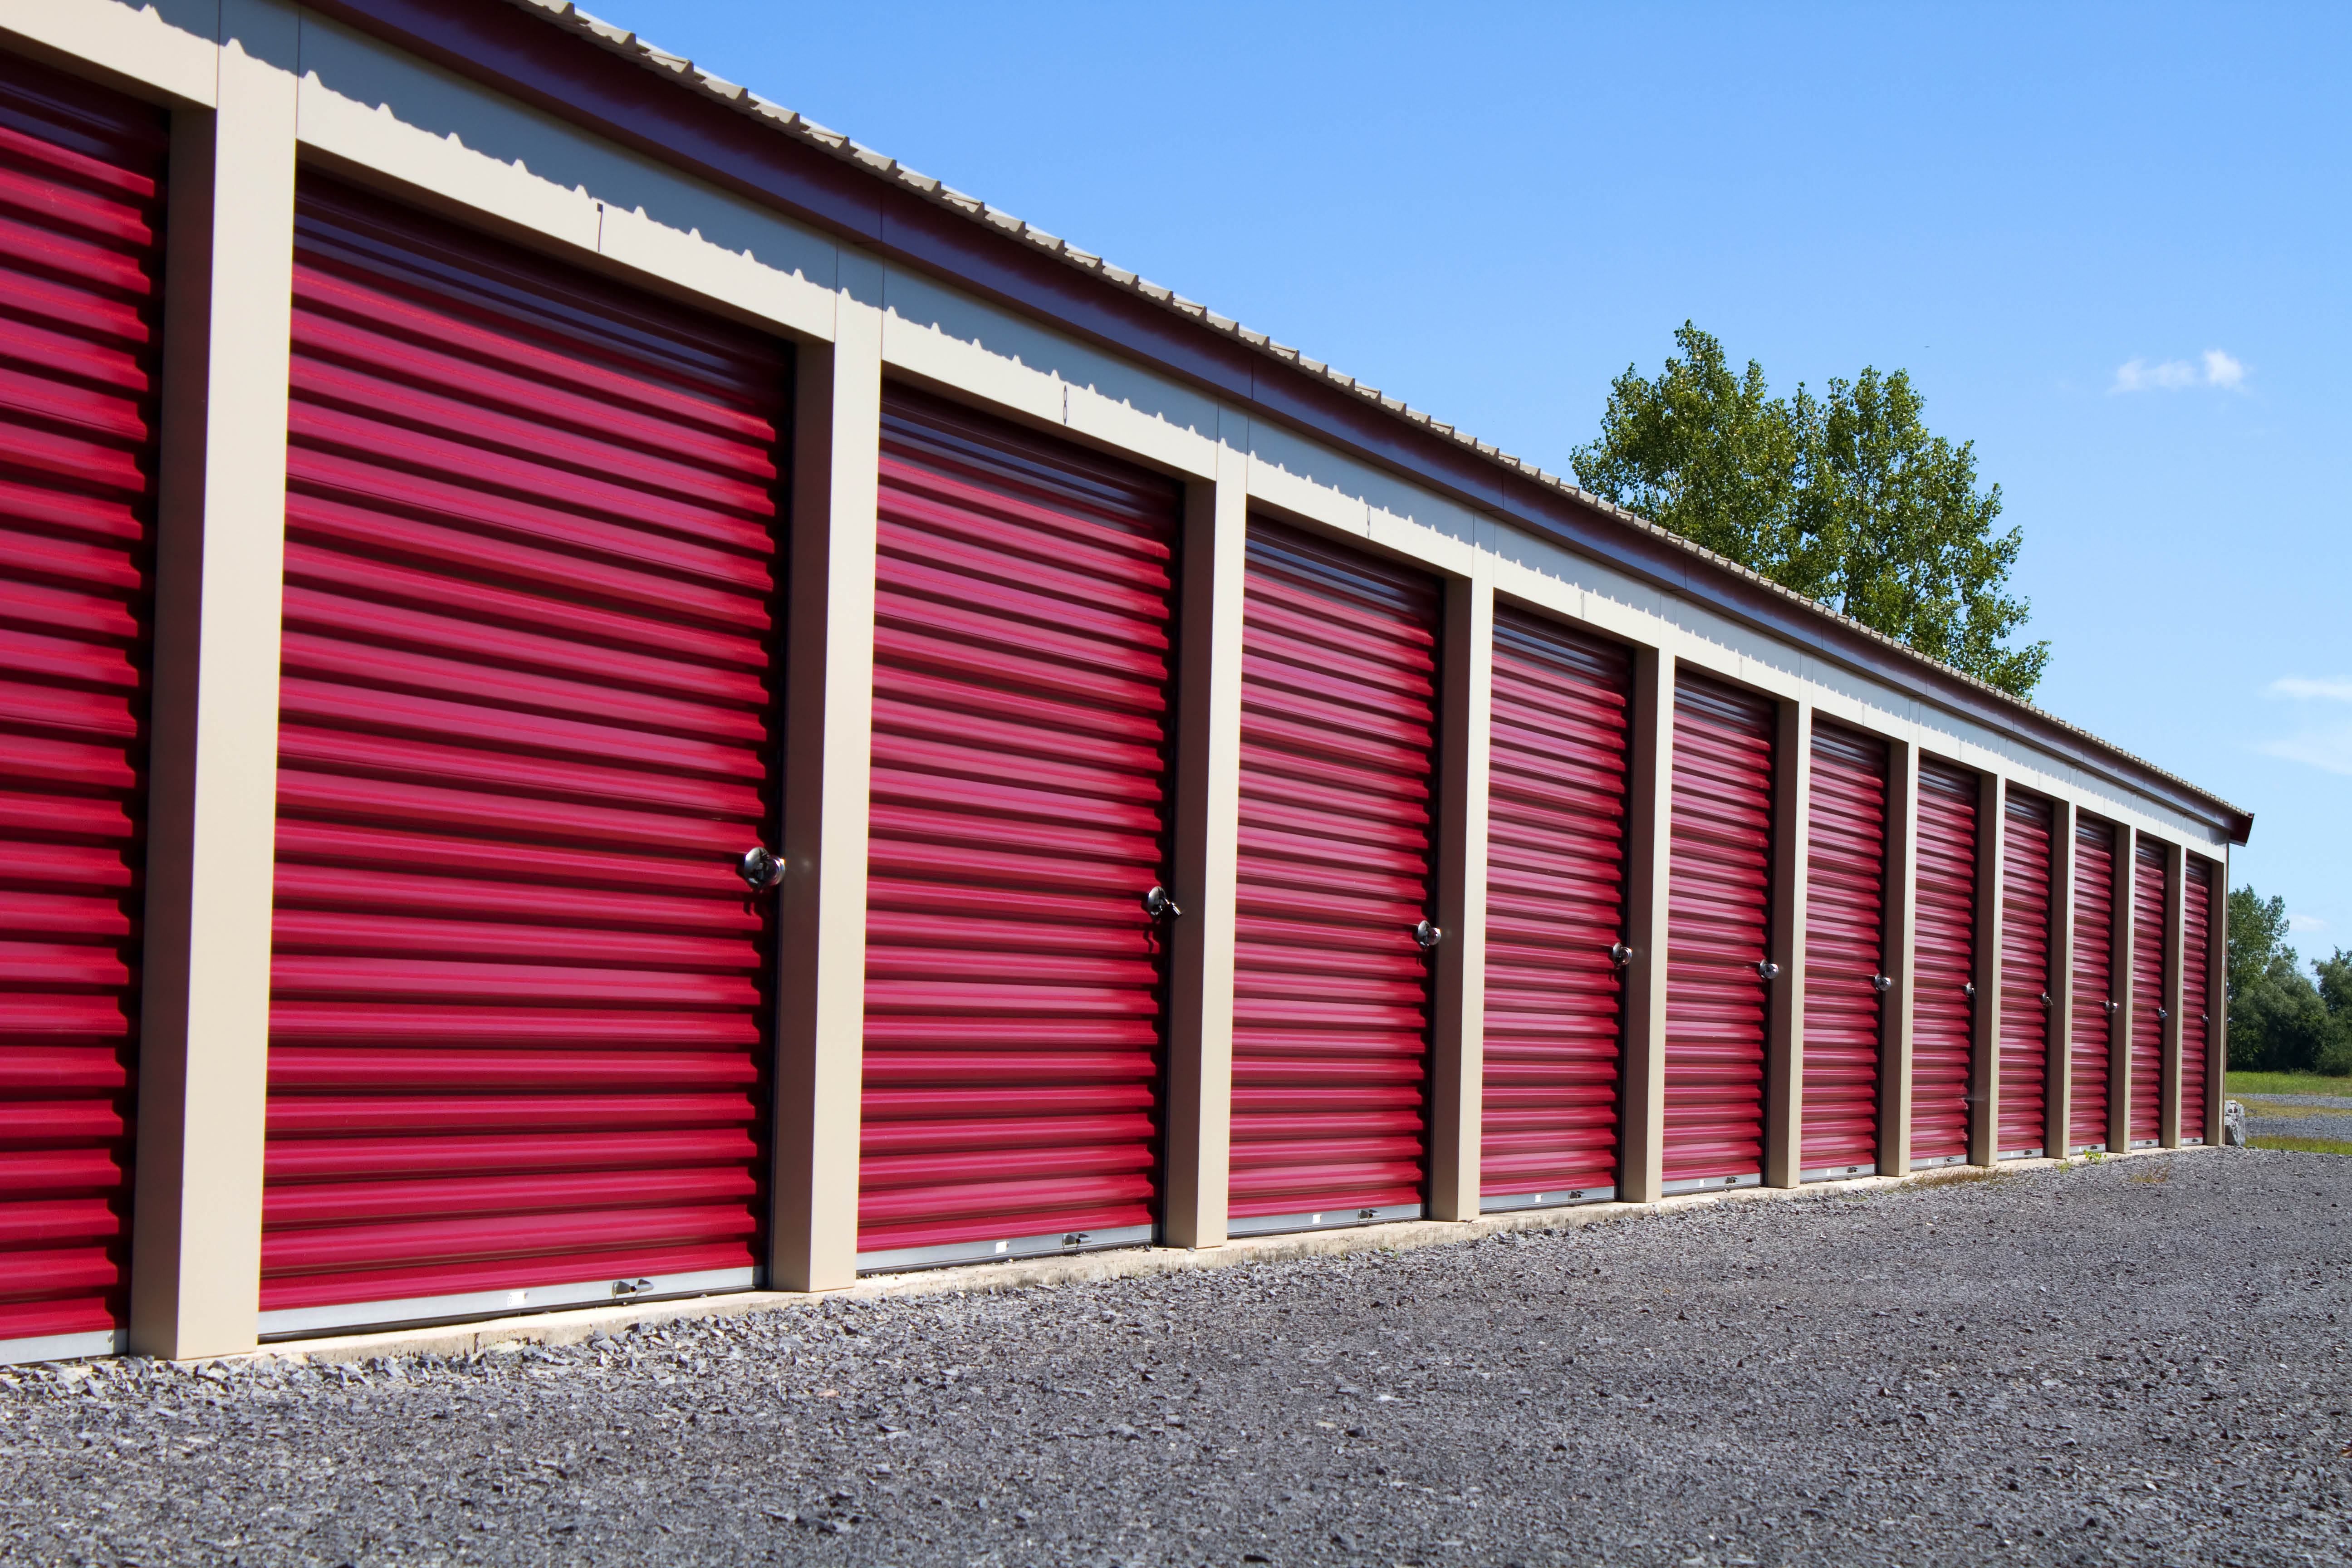 ^ I Need Space Self-Storage oupons in rowley,  76036-9410  Valpak